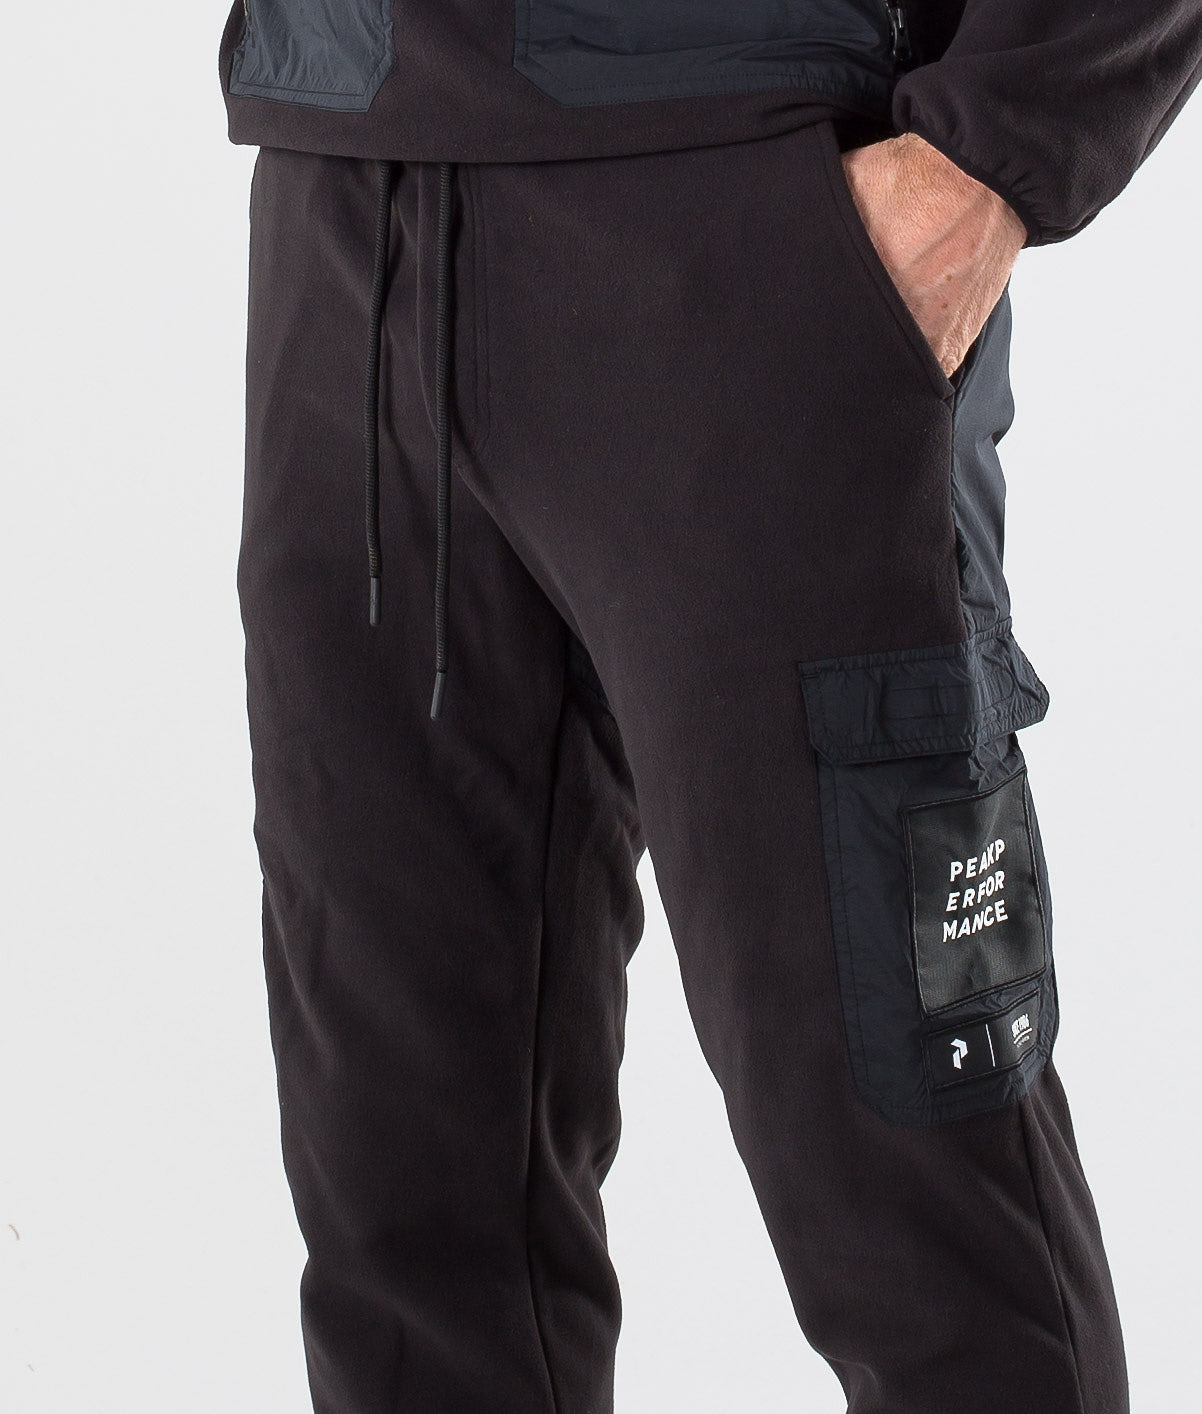 Peak Performance 2.0 Fleece Woven Bukser Black